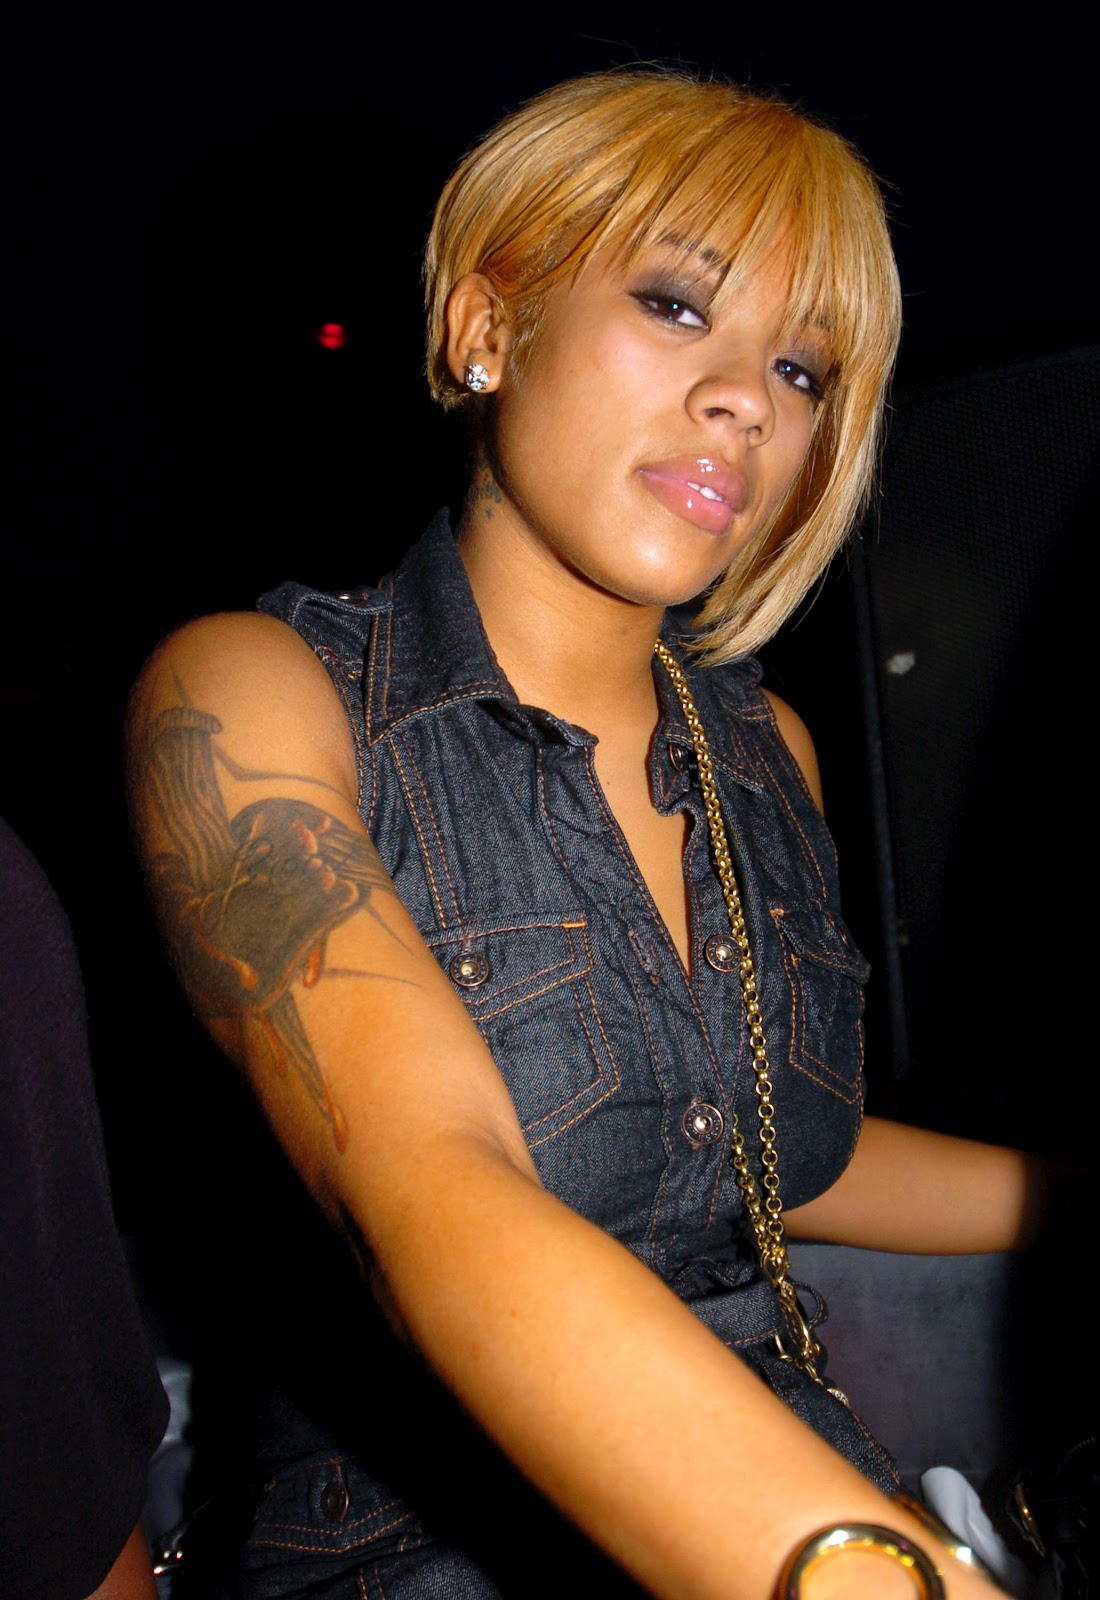 Keyshia Cole Hairstyle Trends: Keyshia Cole Hairstyle Pictures